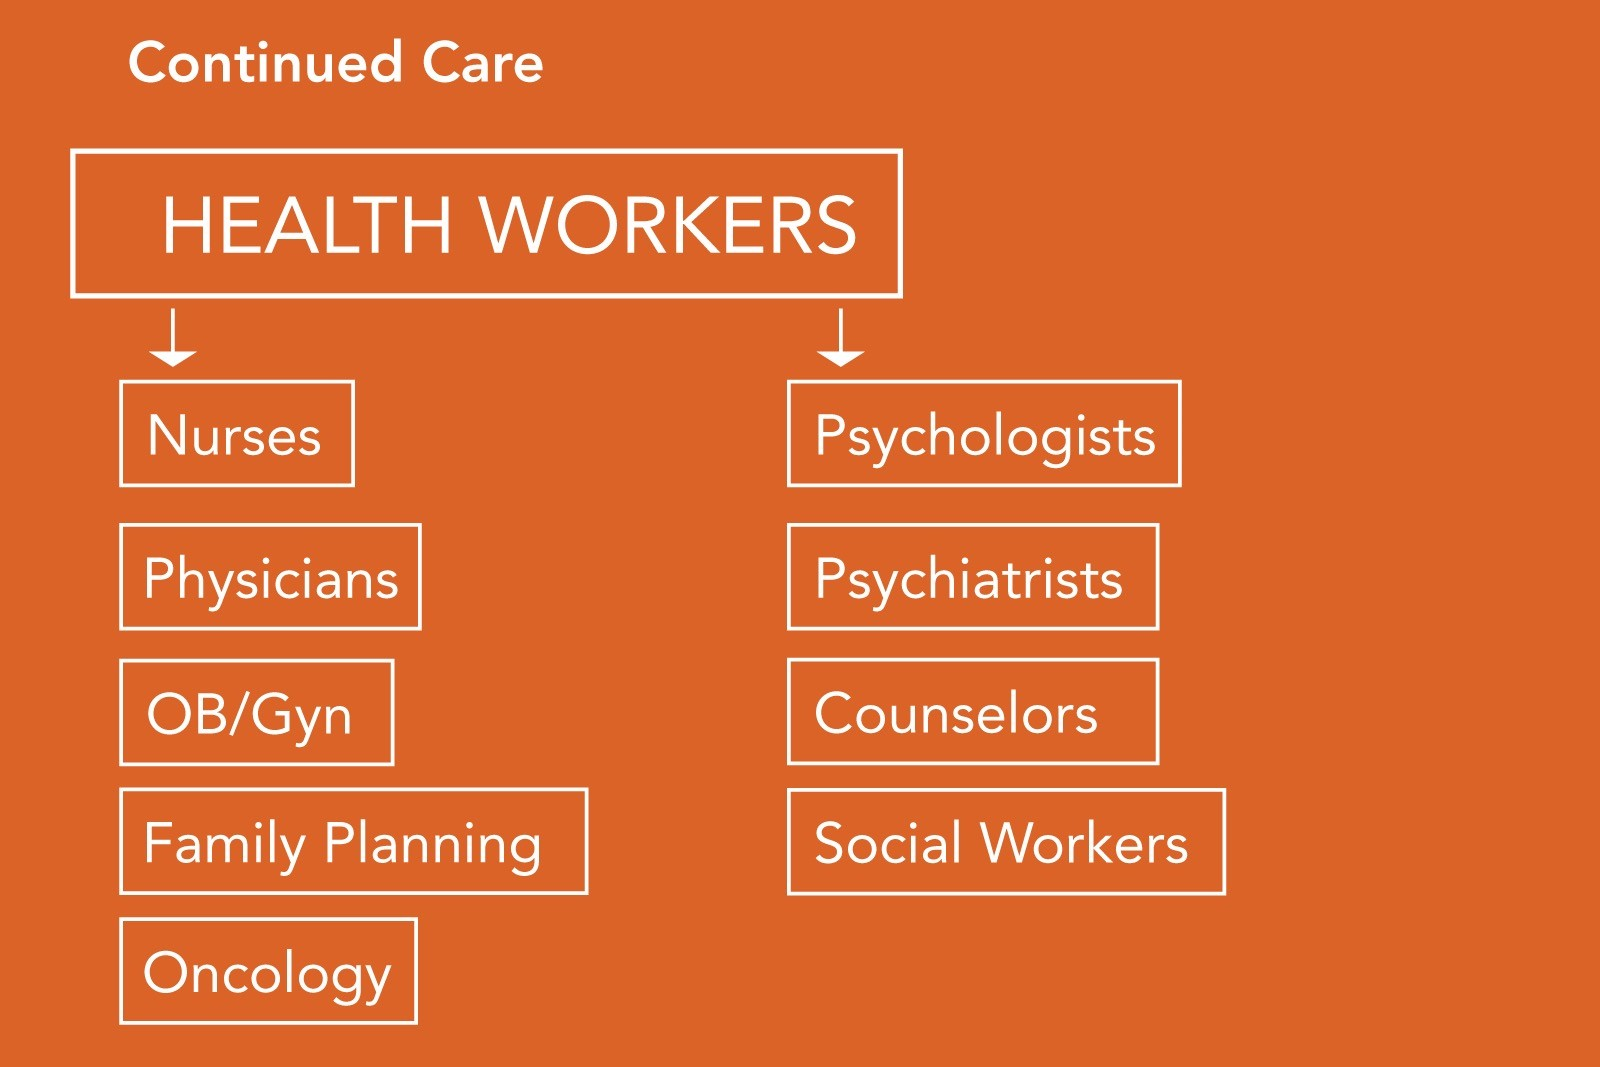 Some of the types of health workers needed for on-going care.